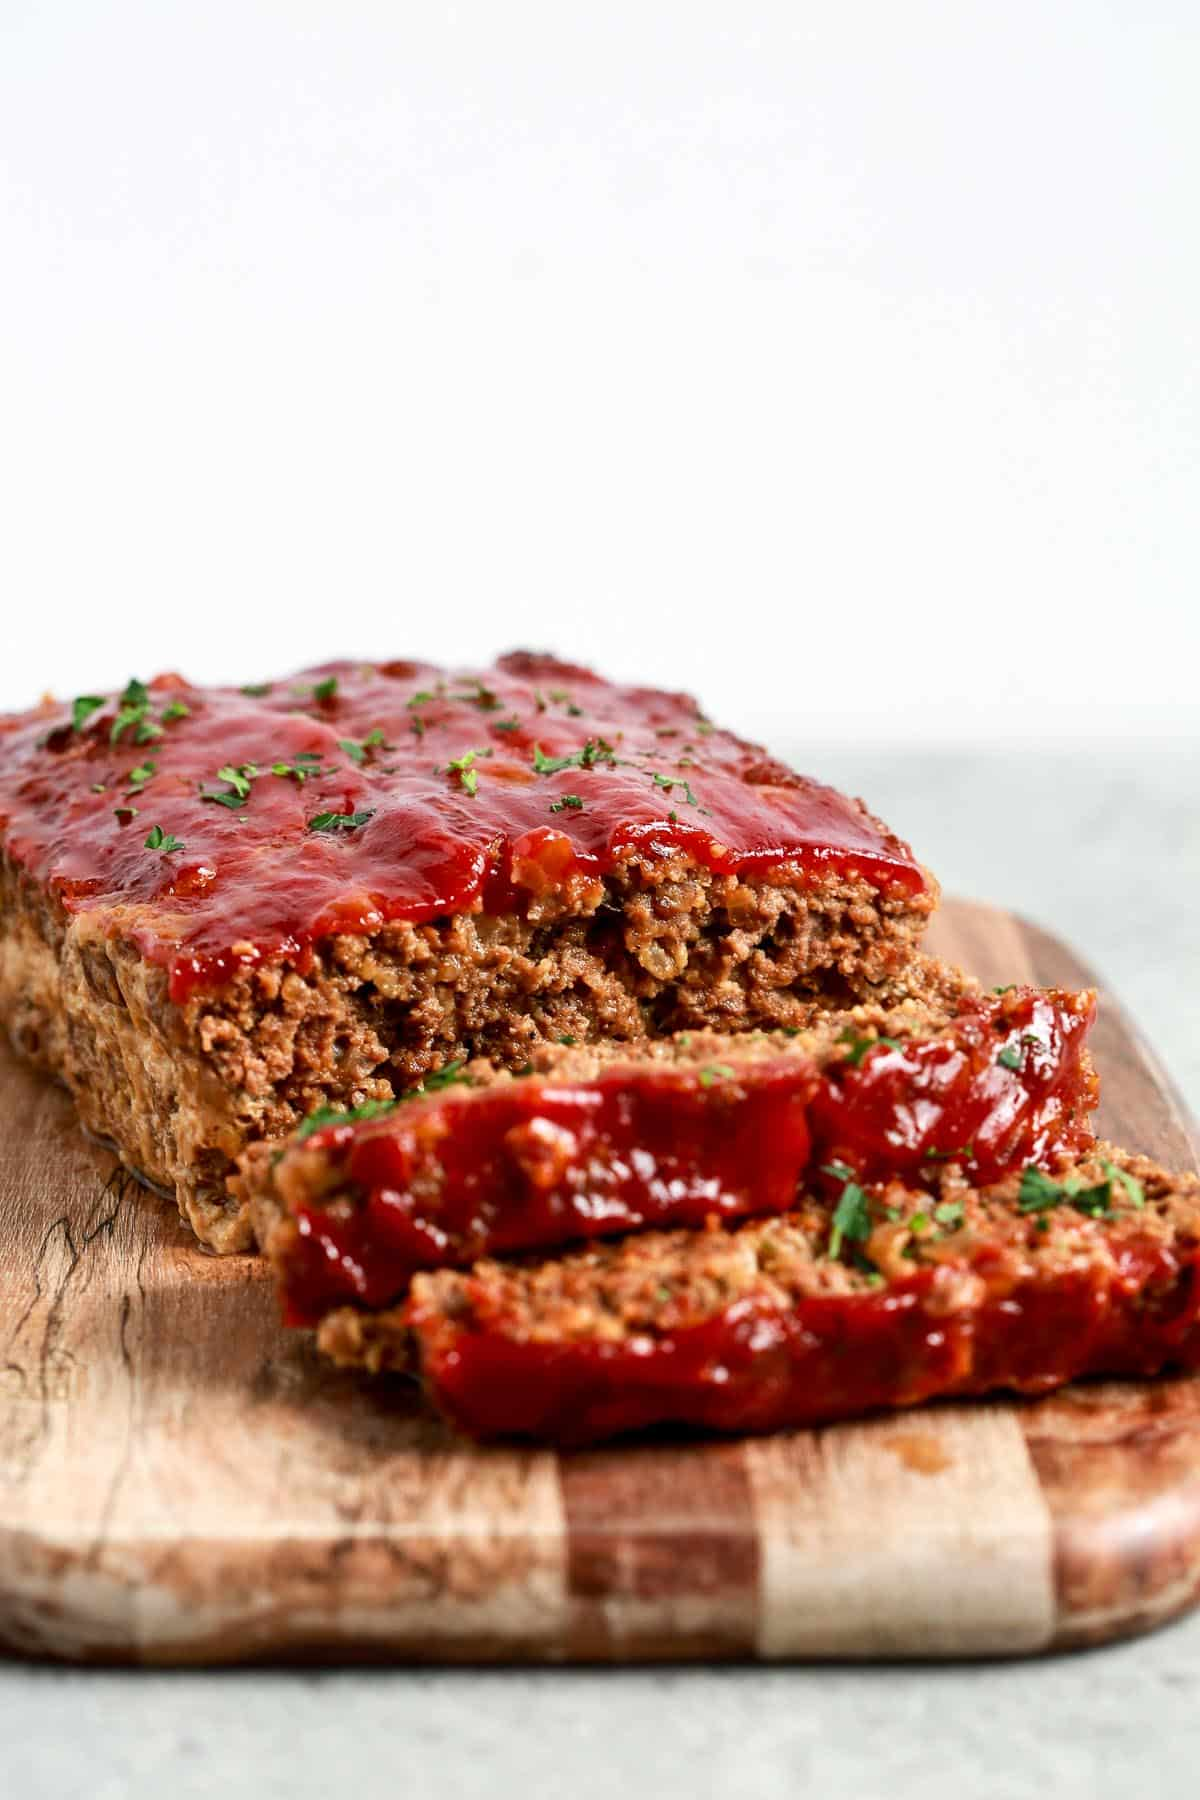 savory ground beef dinner - juicy, healthy meatloaf